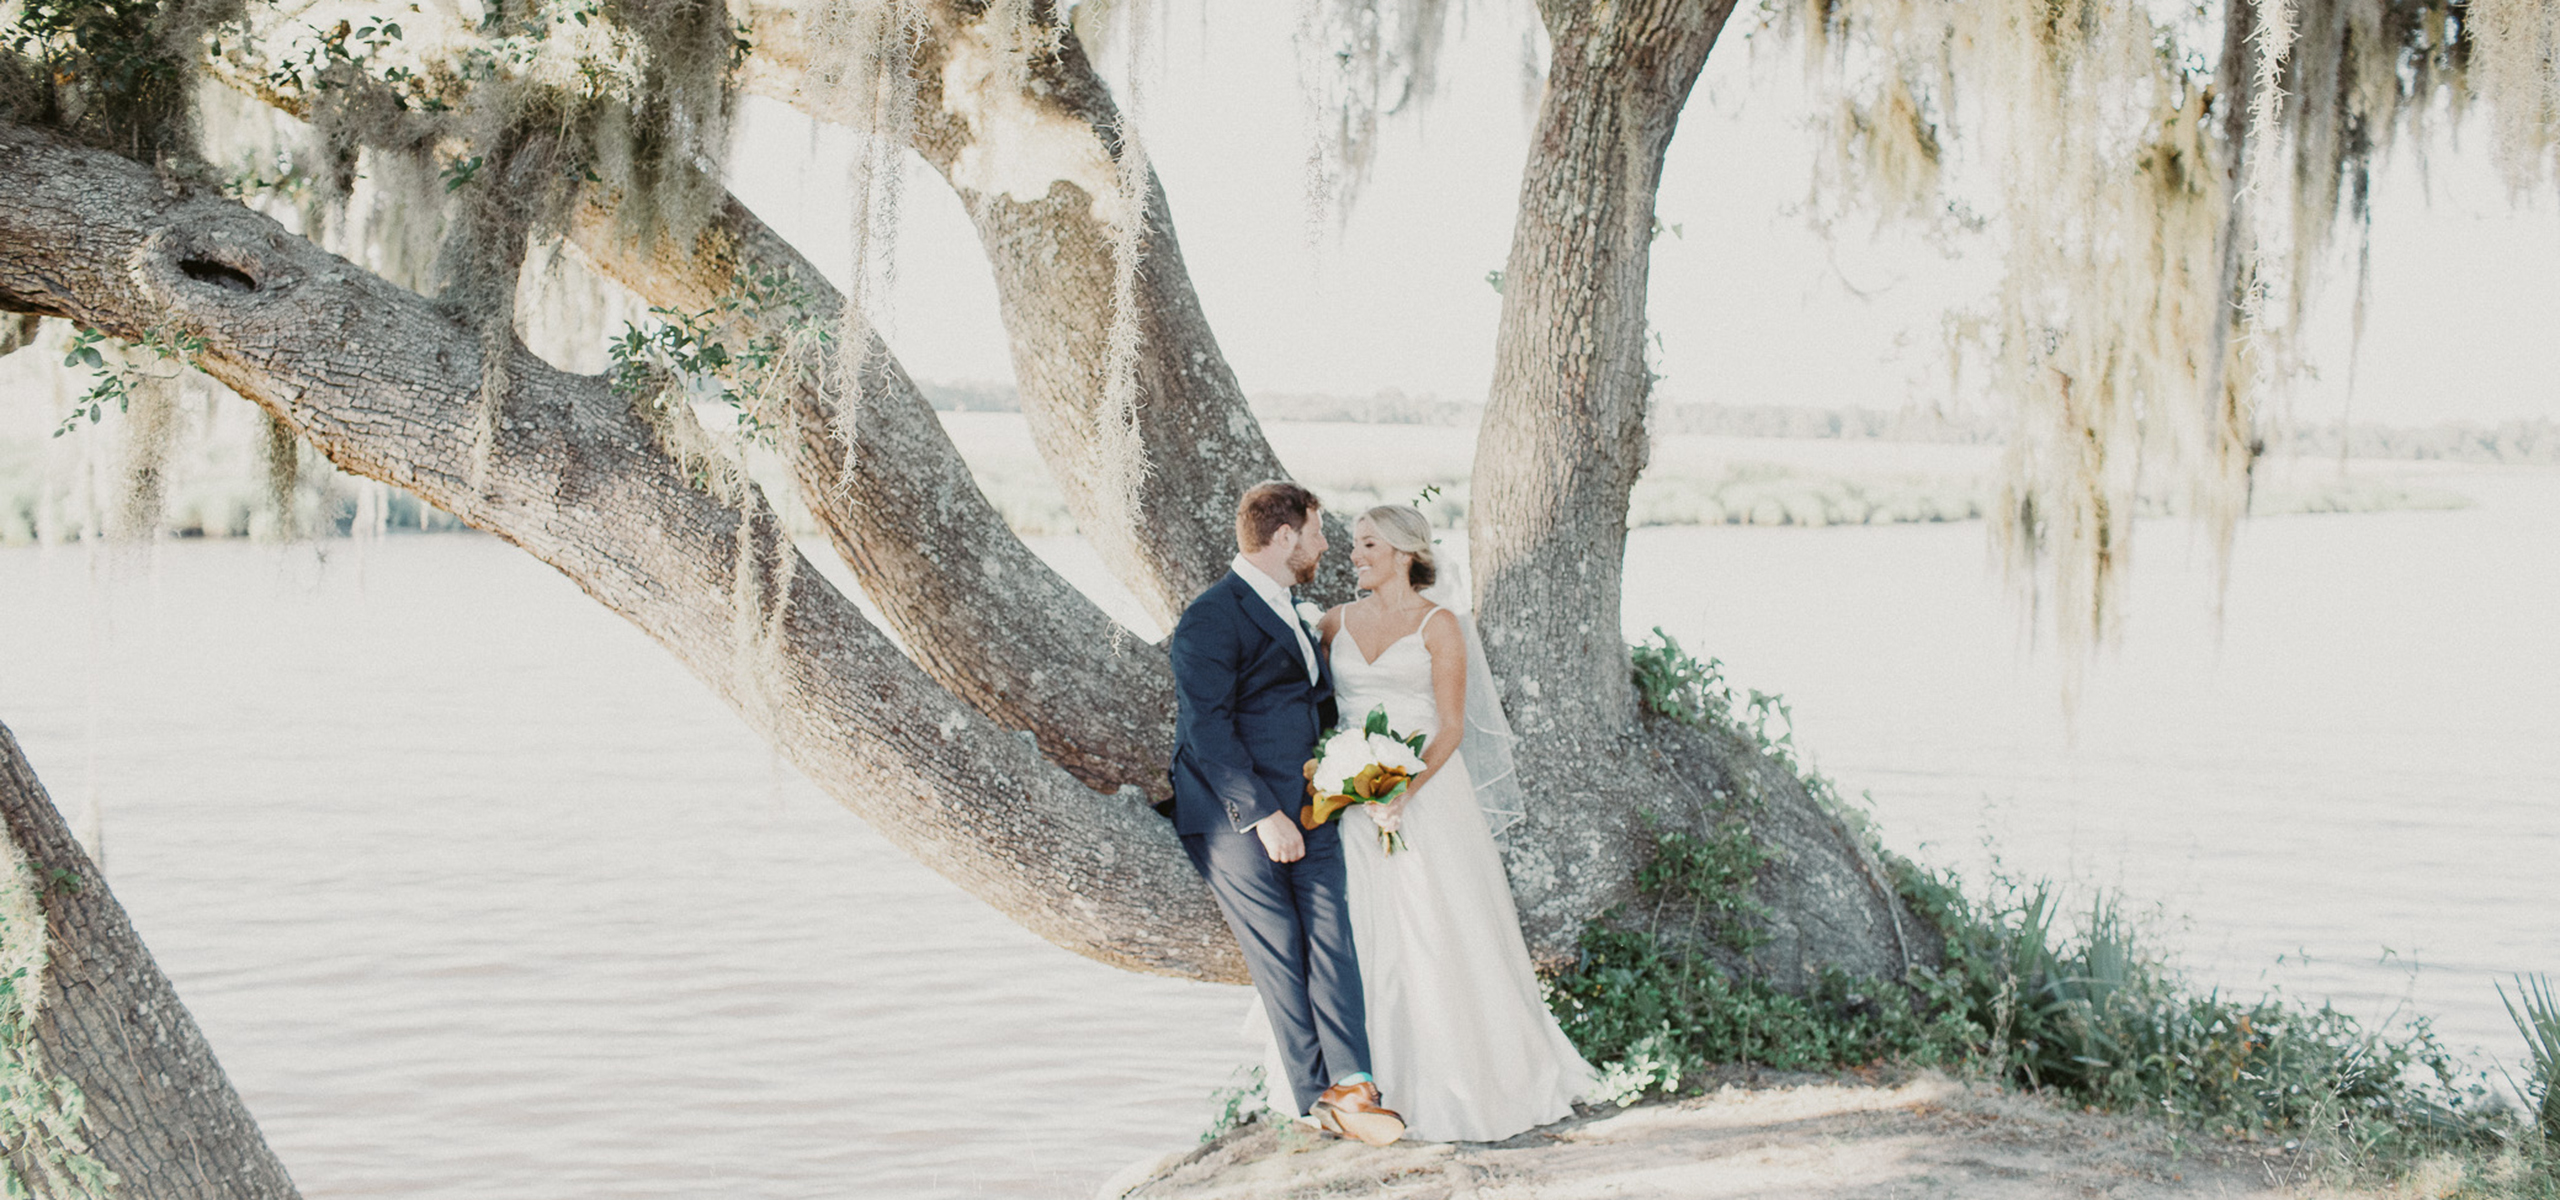 Port St Lucie Florida Wedding Photography + Elopement Photography